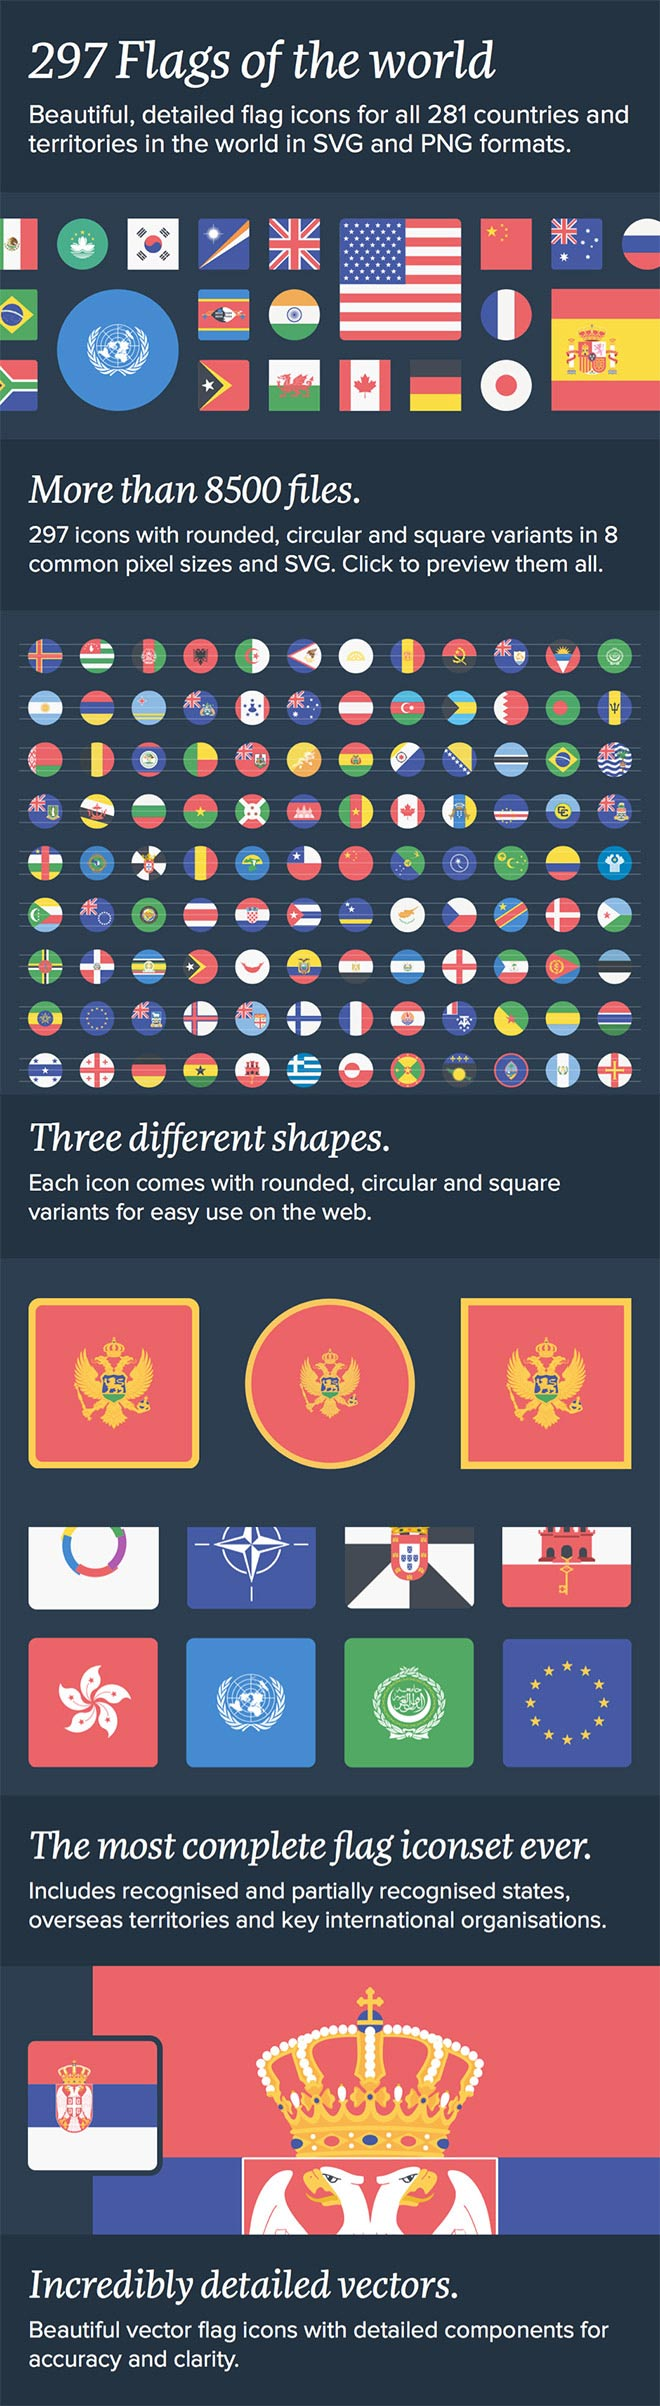 297 Flags of The World